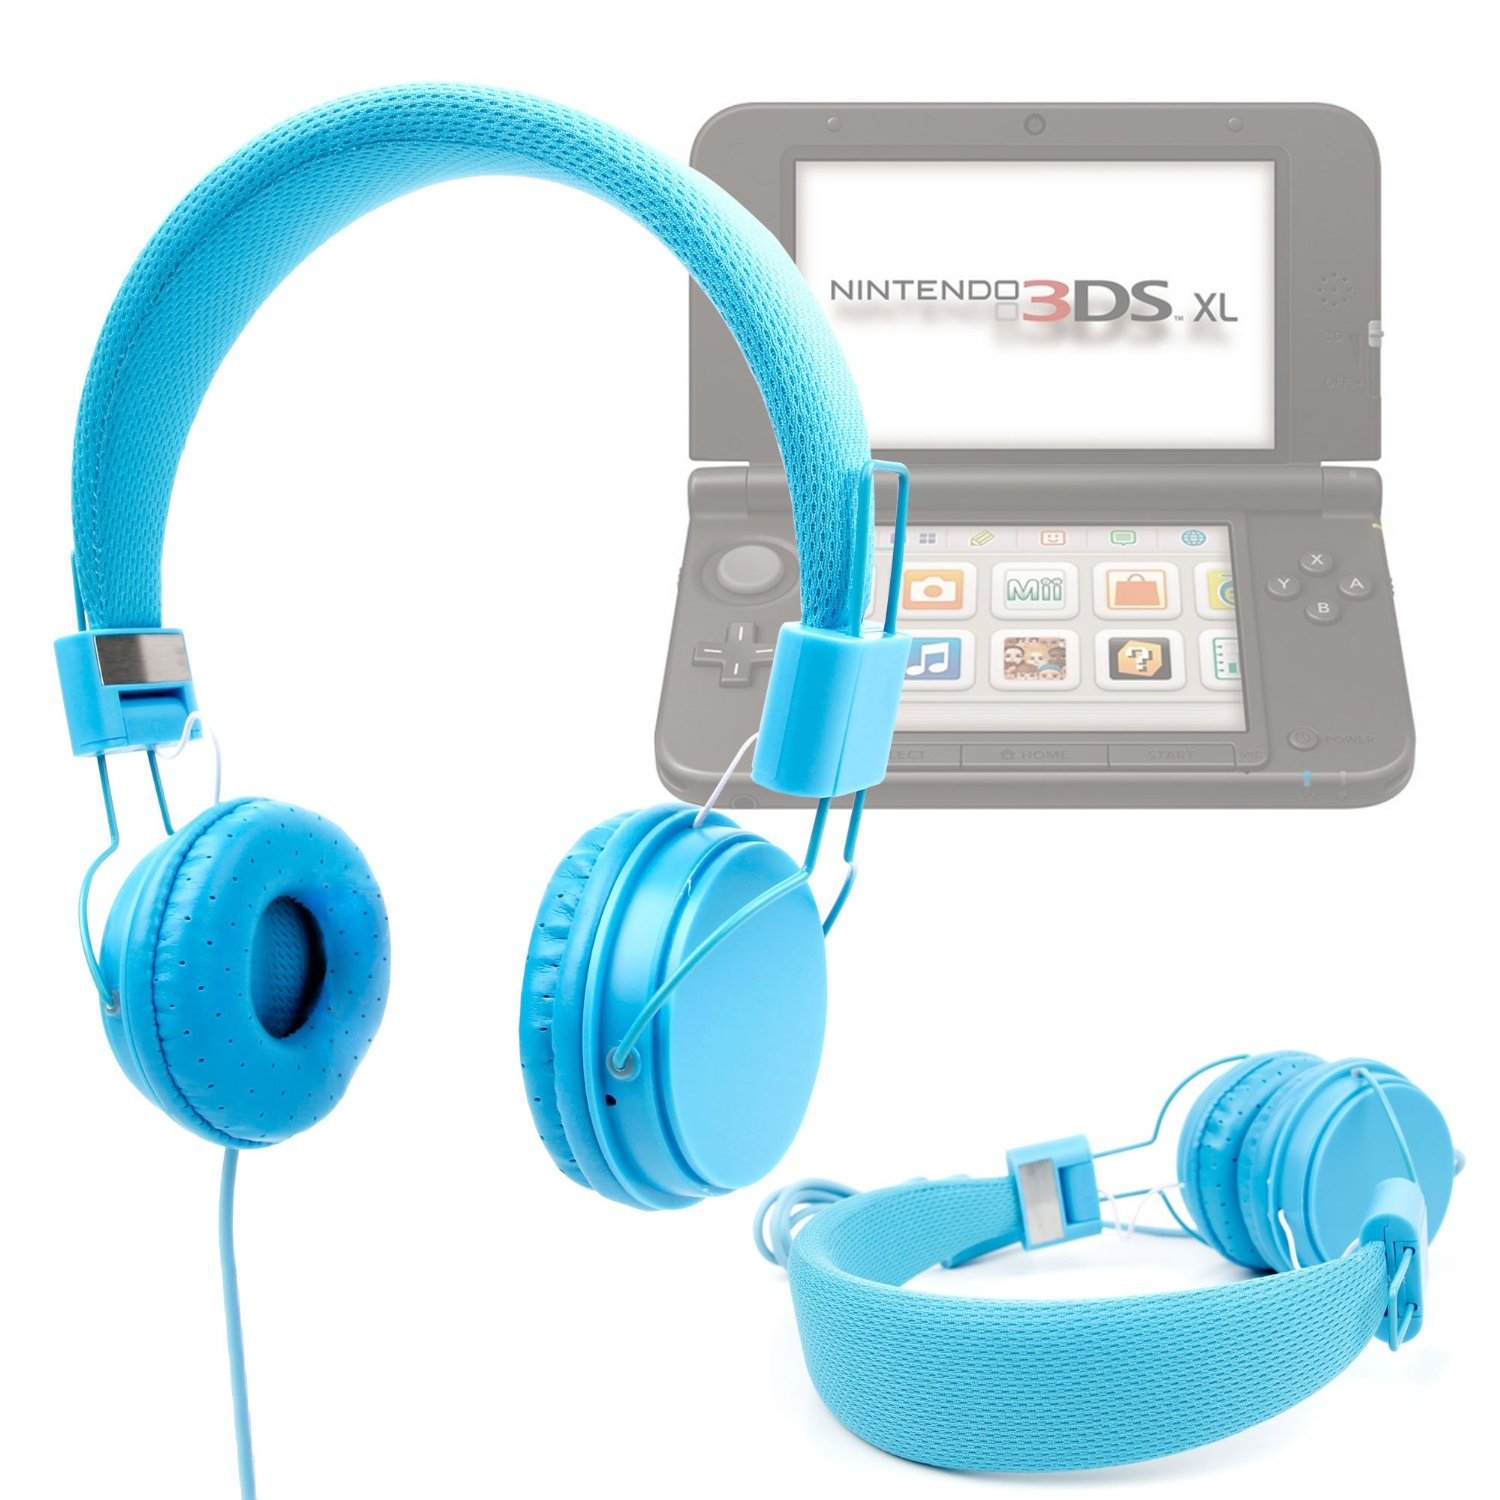 DURAGADGET Blue Ultra-Stylish Kids Fashion Headphones For New Nintendo 3DS XL - With Padded Design, Button Remote And Microphone Function